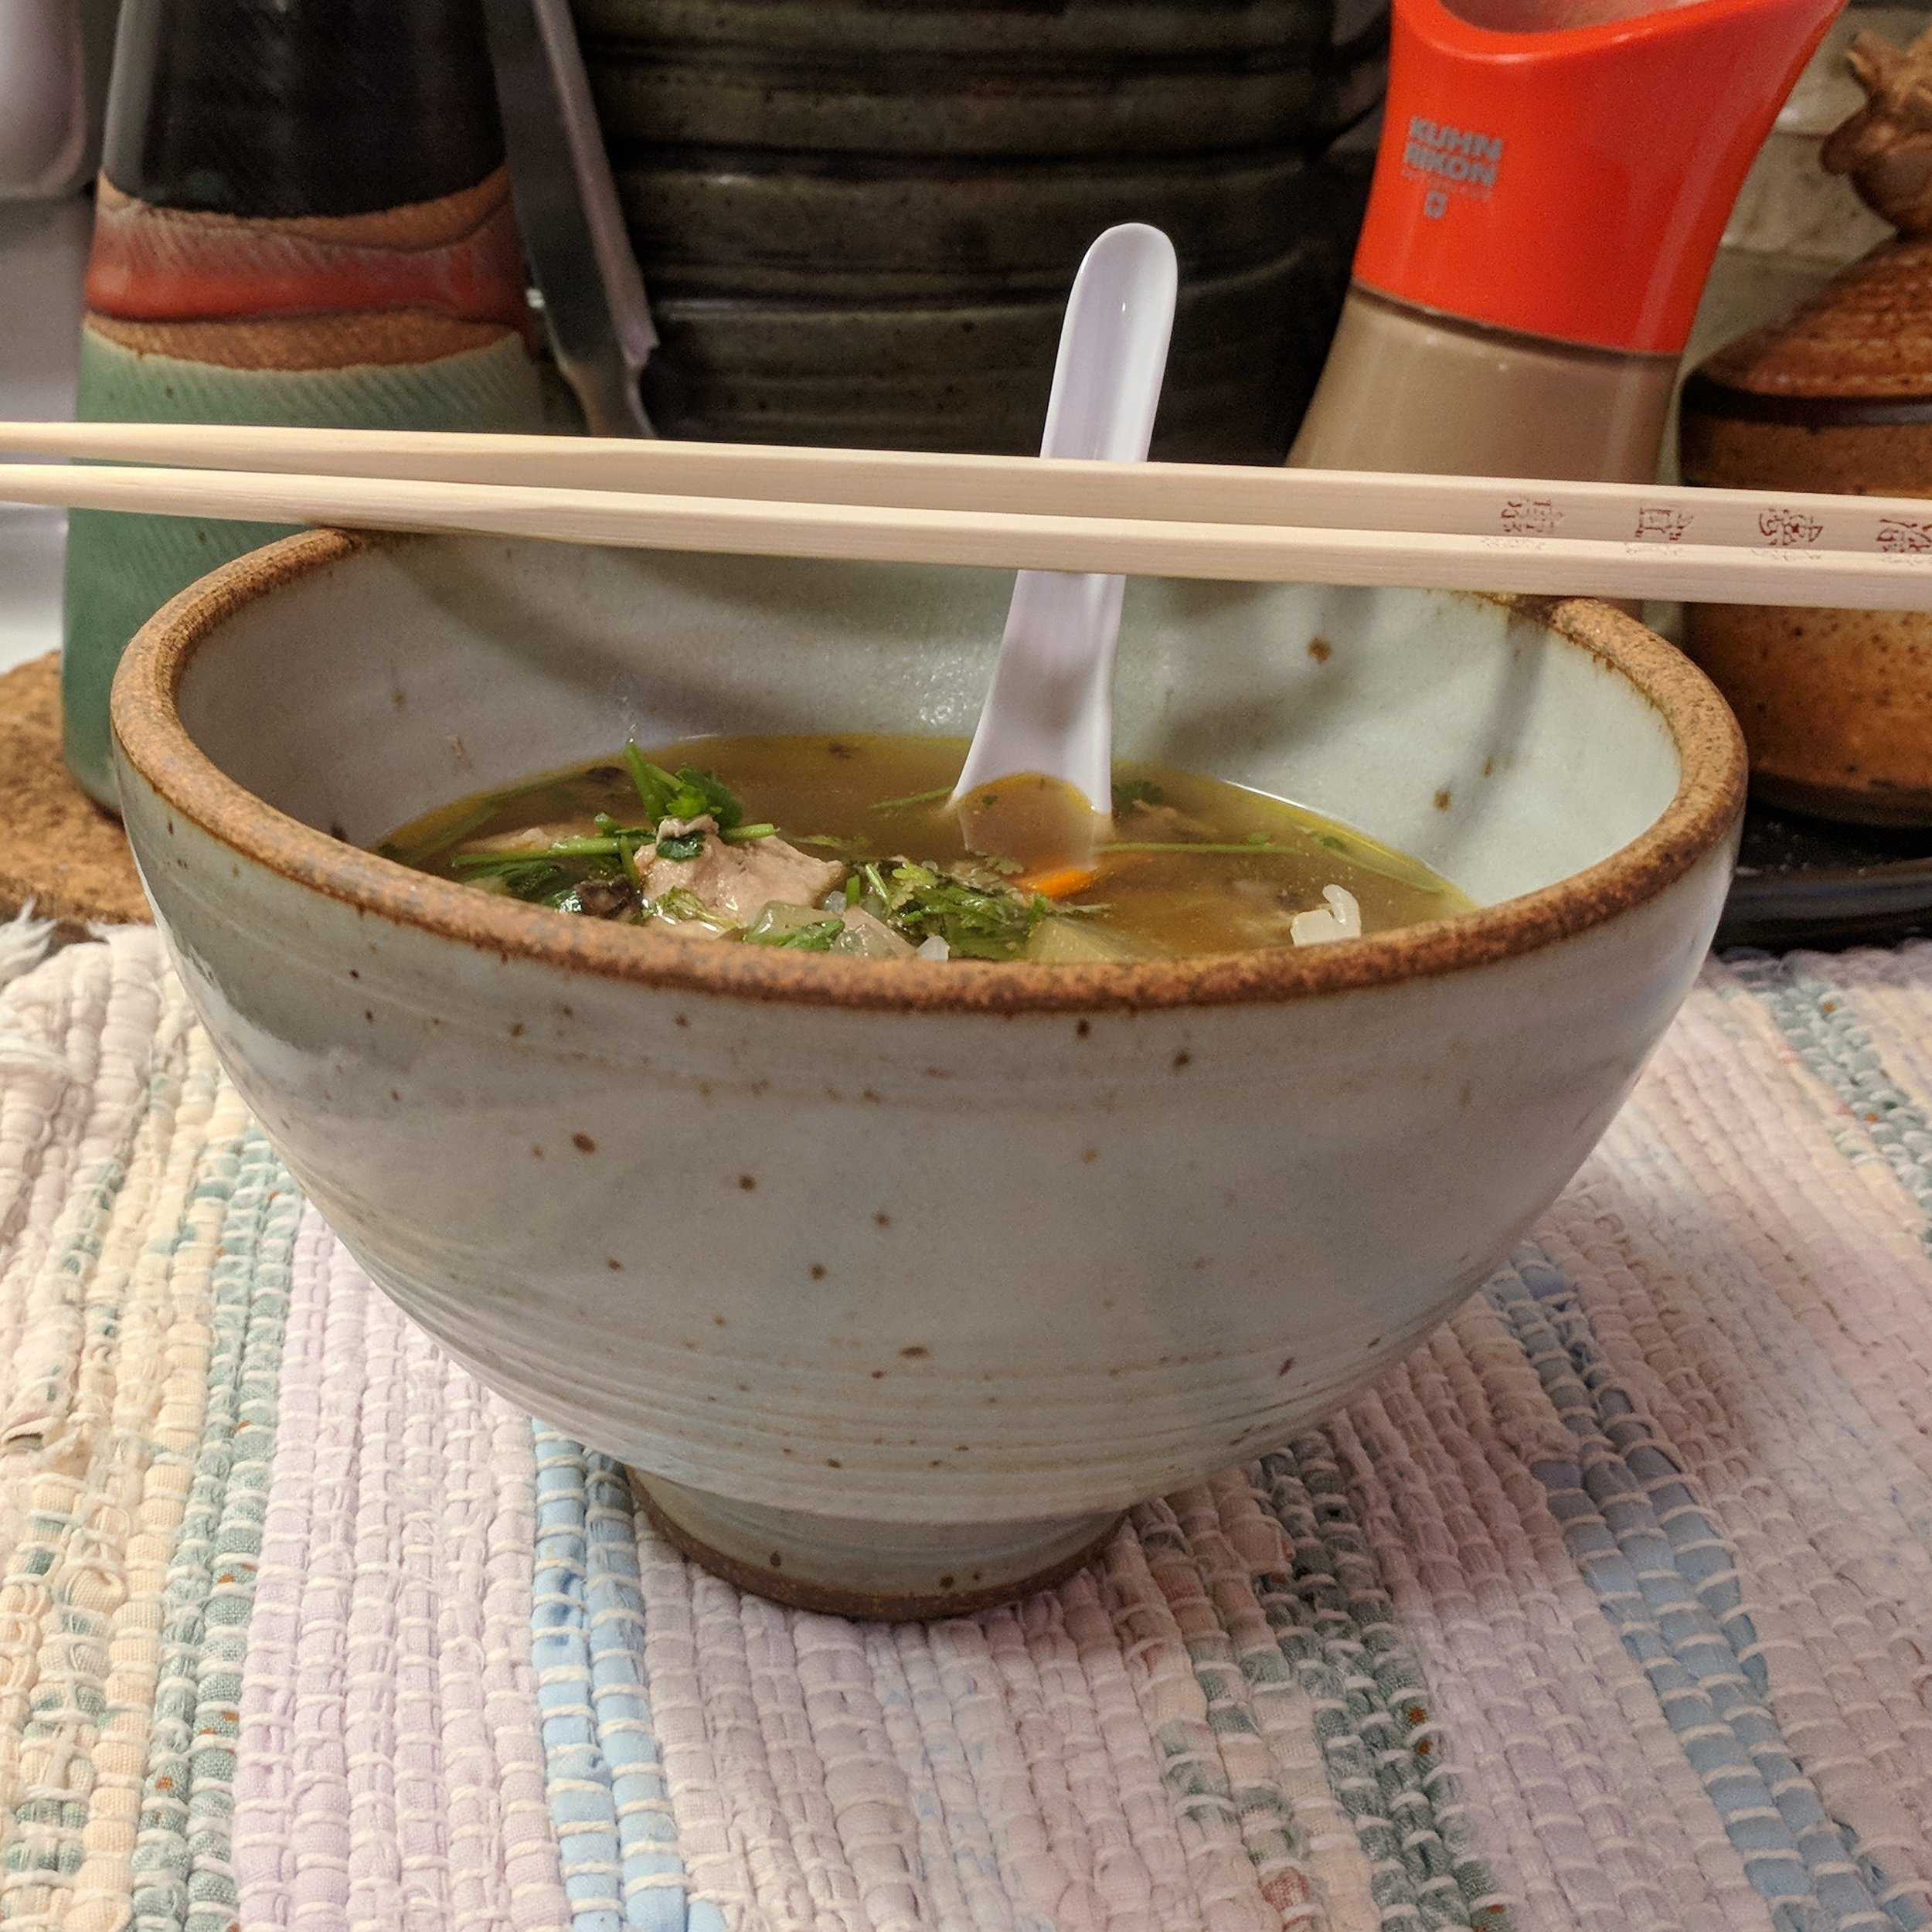 Homemade pho by Jane, TuSk bowl by me.